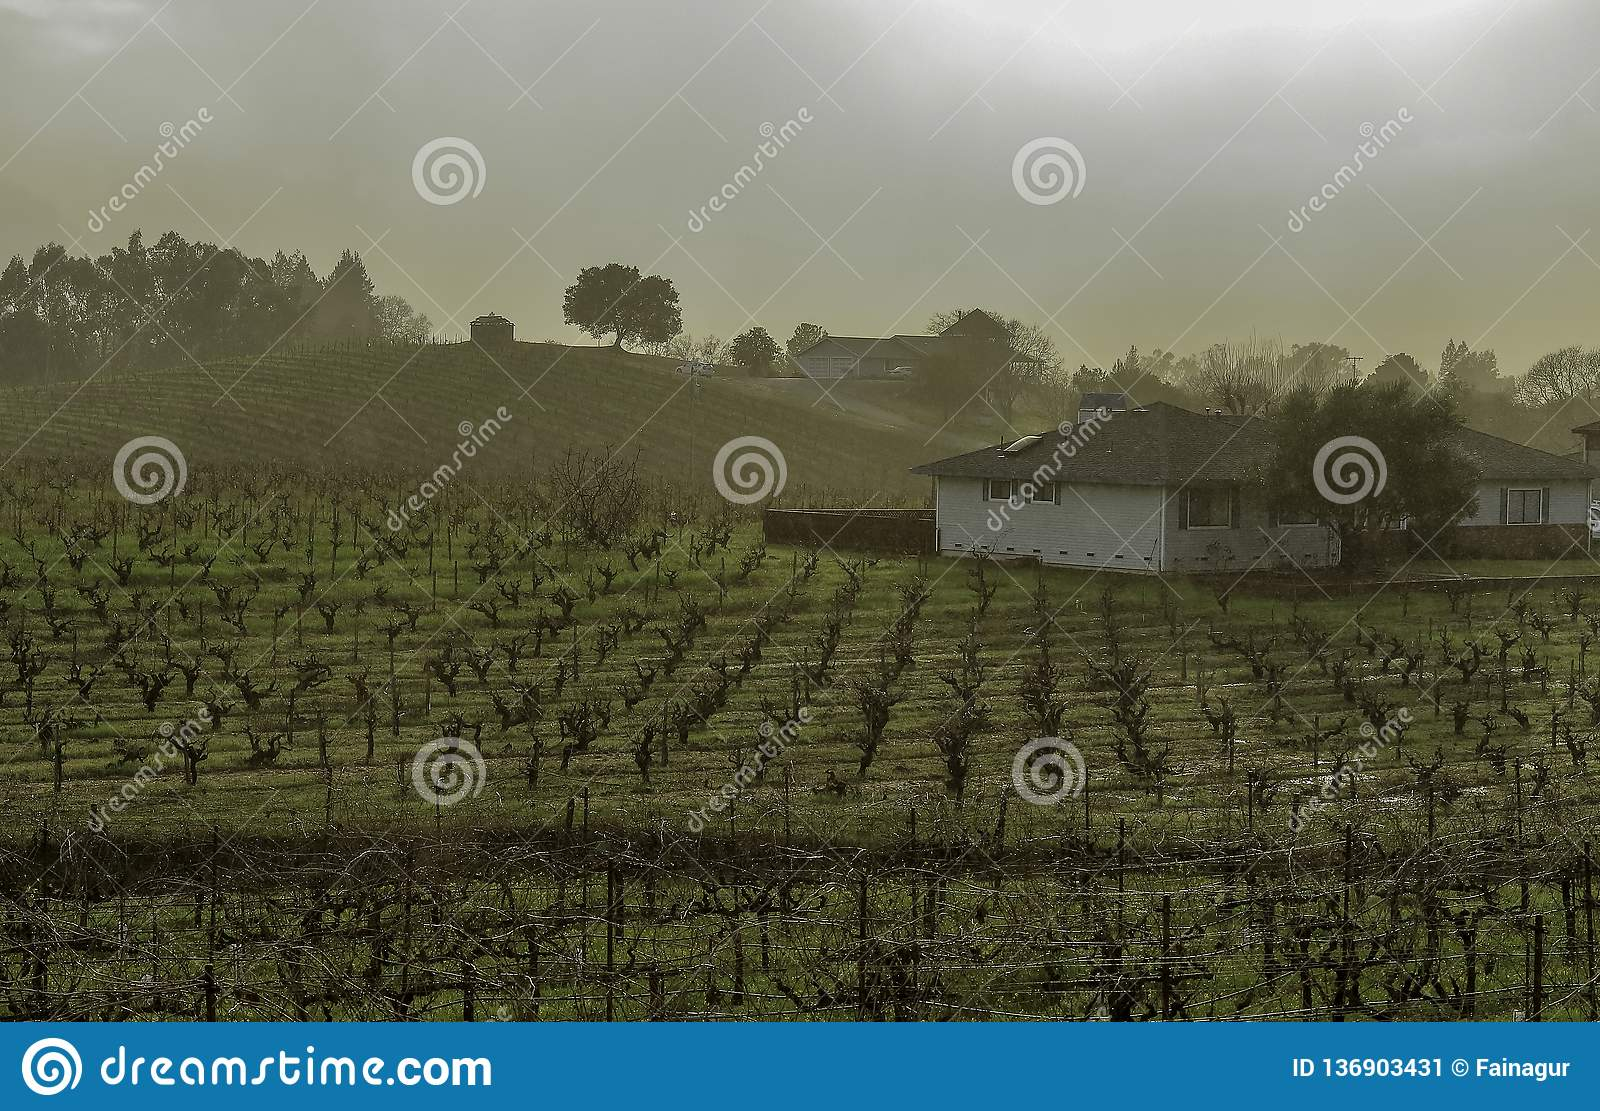 Vineyard hill with rows of grape vines, houses, and trees